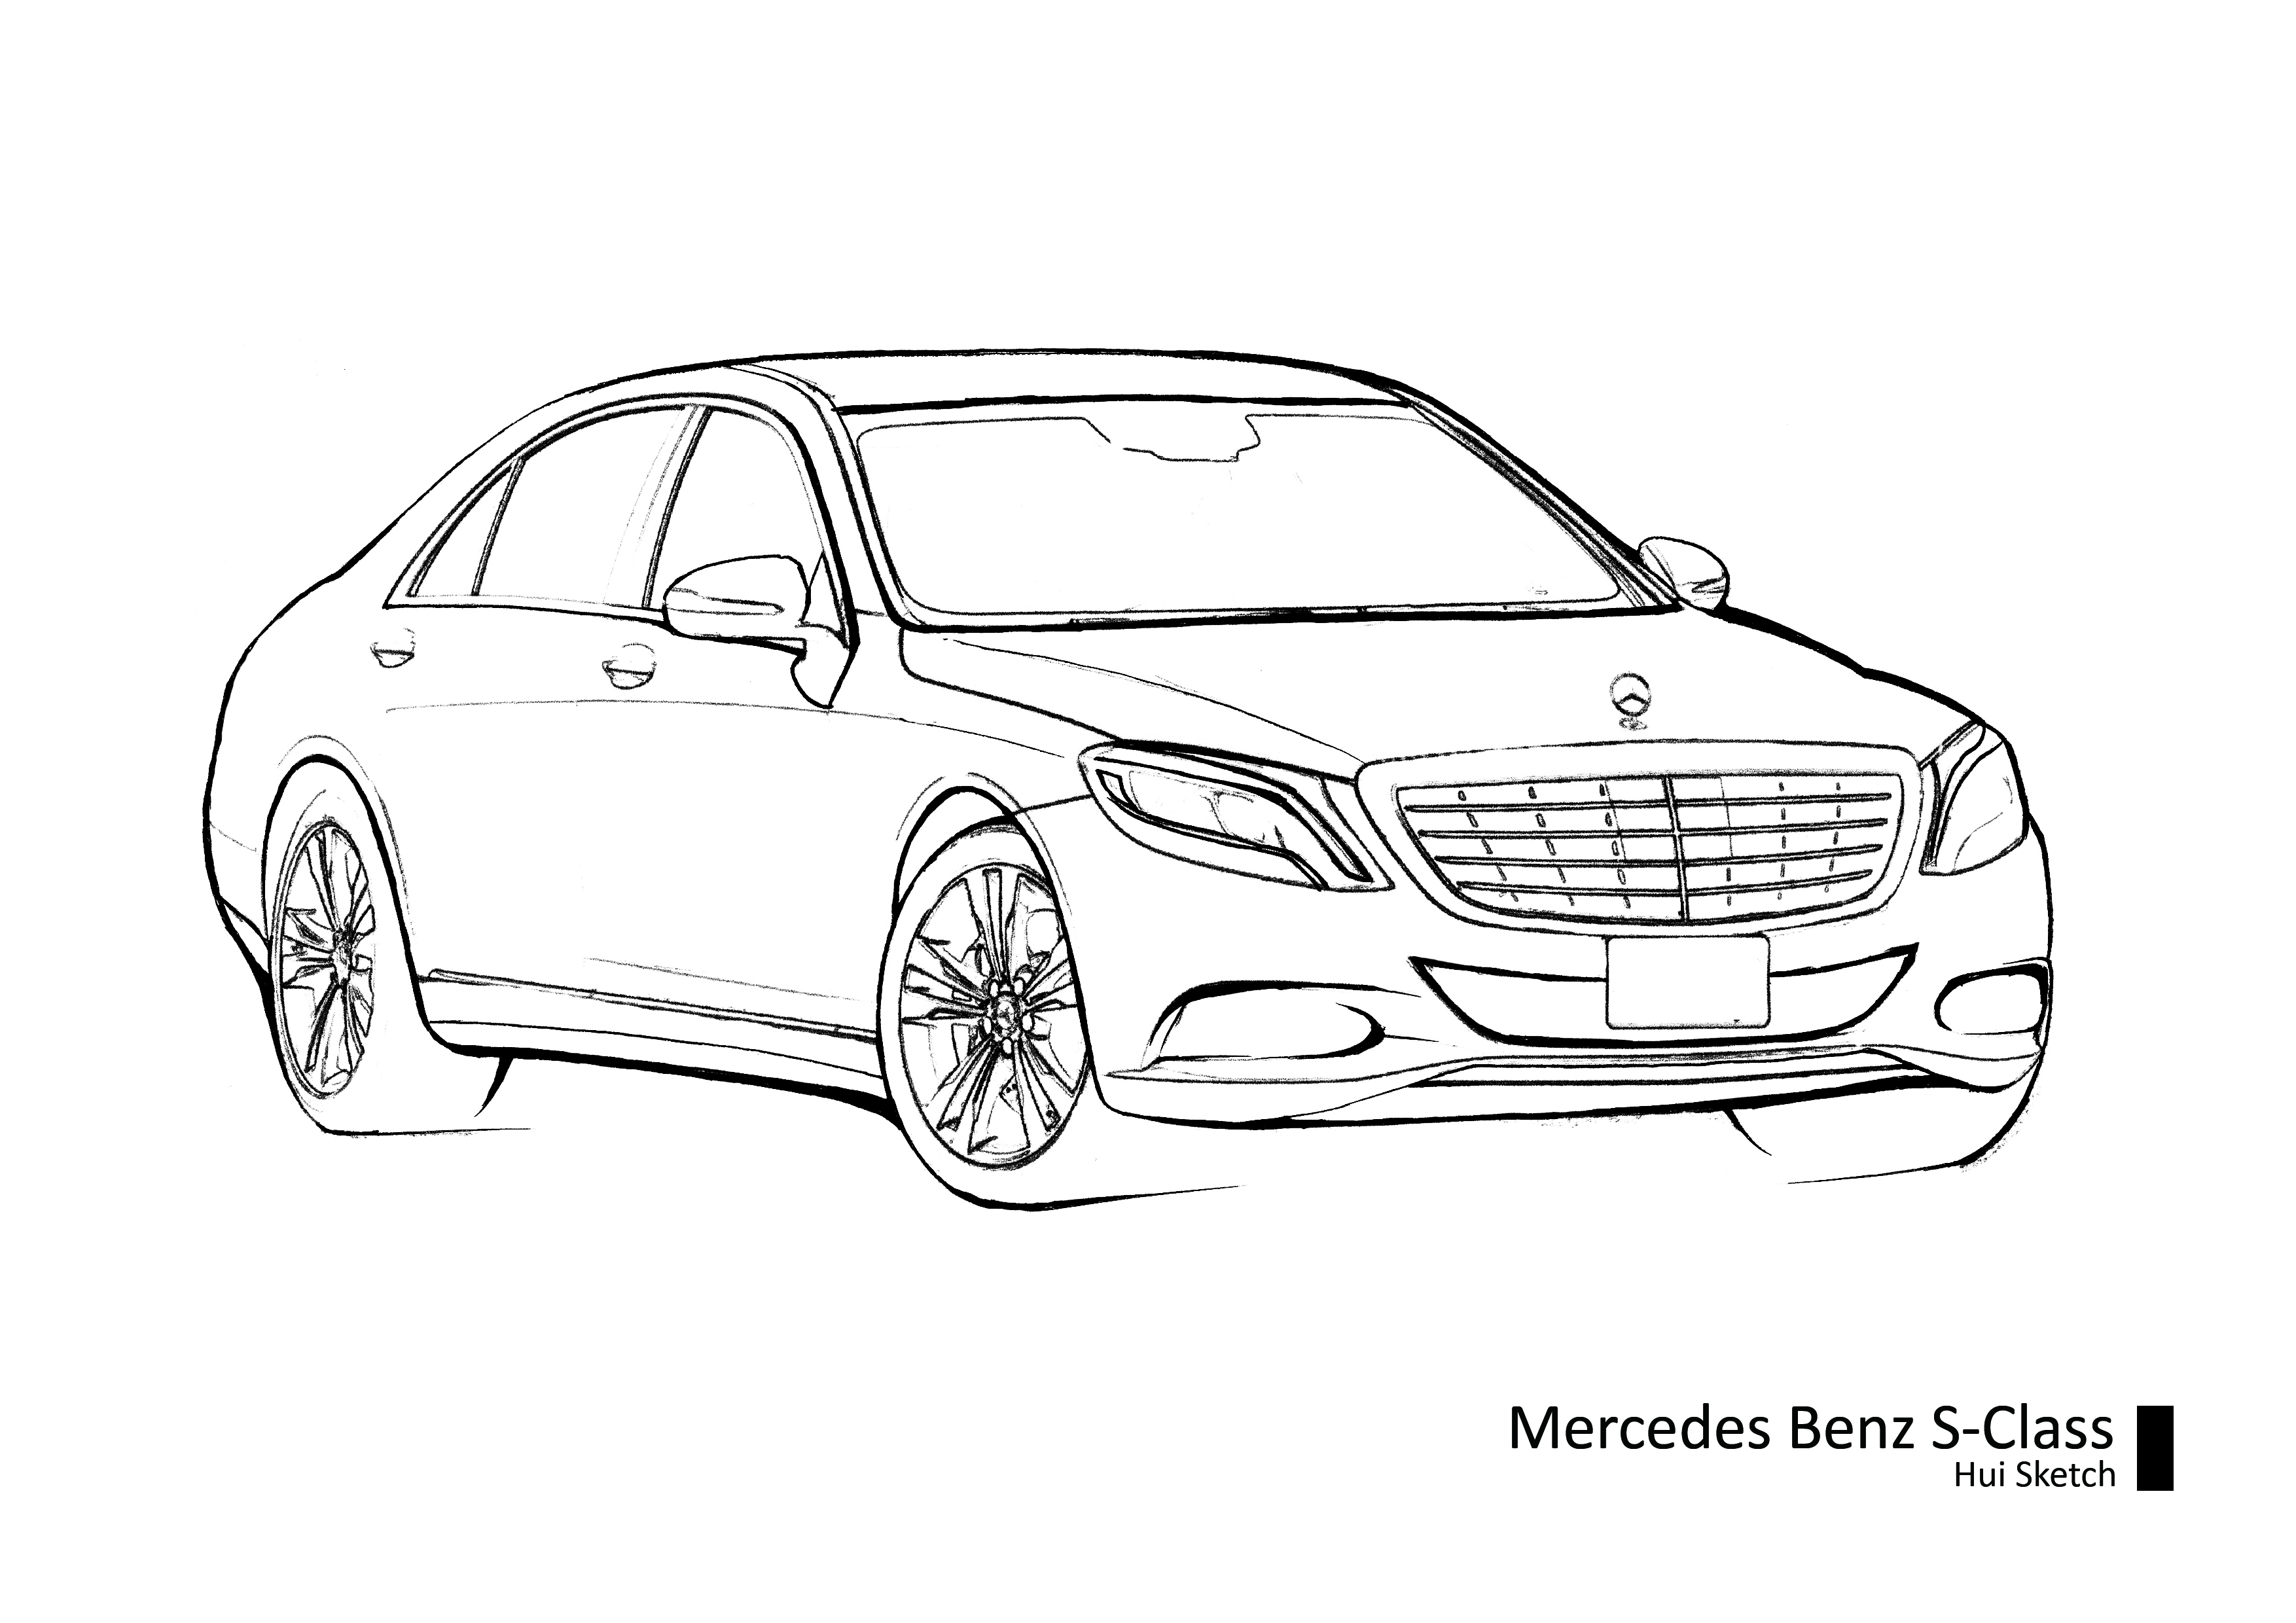 Ausmalbilder Autos Mercedes : Mercedes Benz Drawing At Getdrawings Com Free For Personal Use